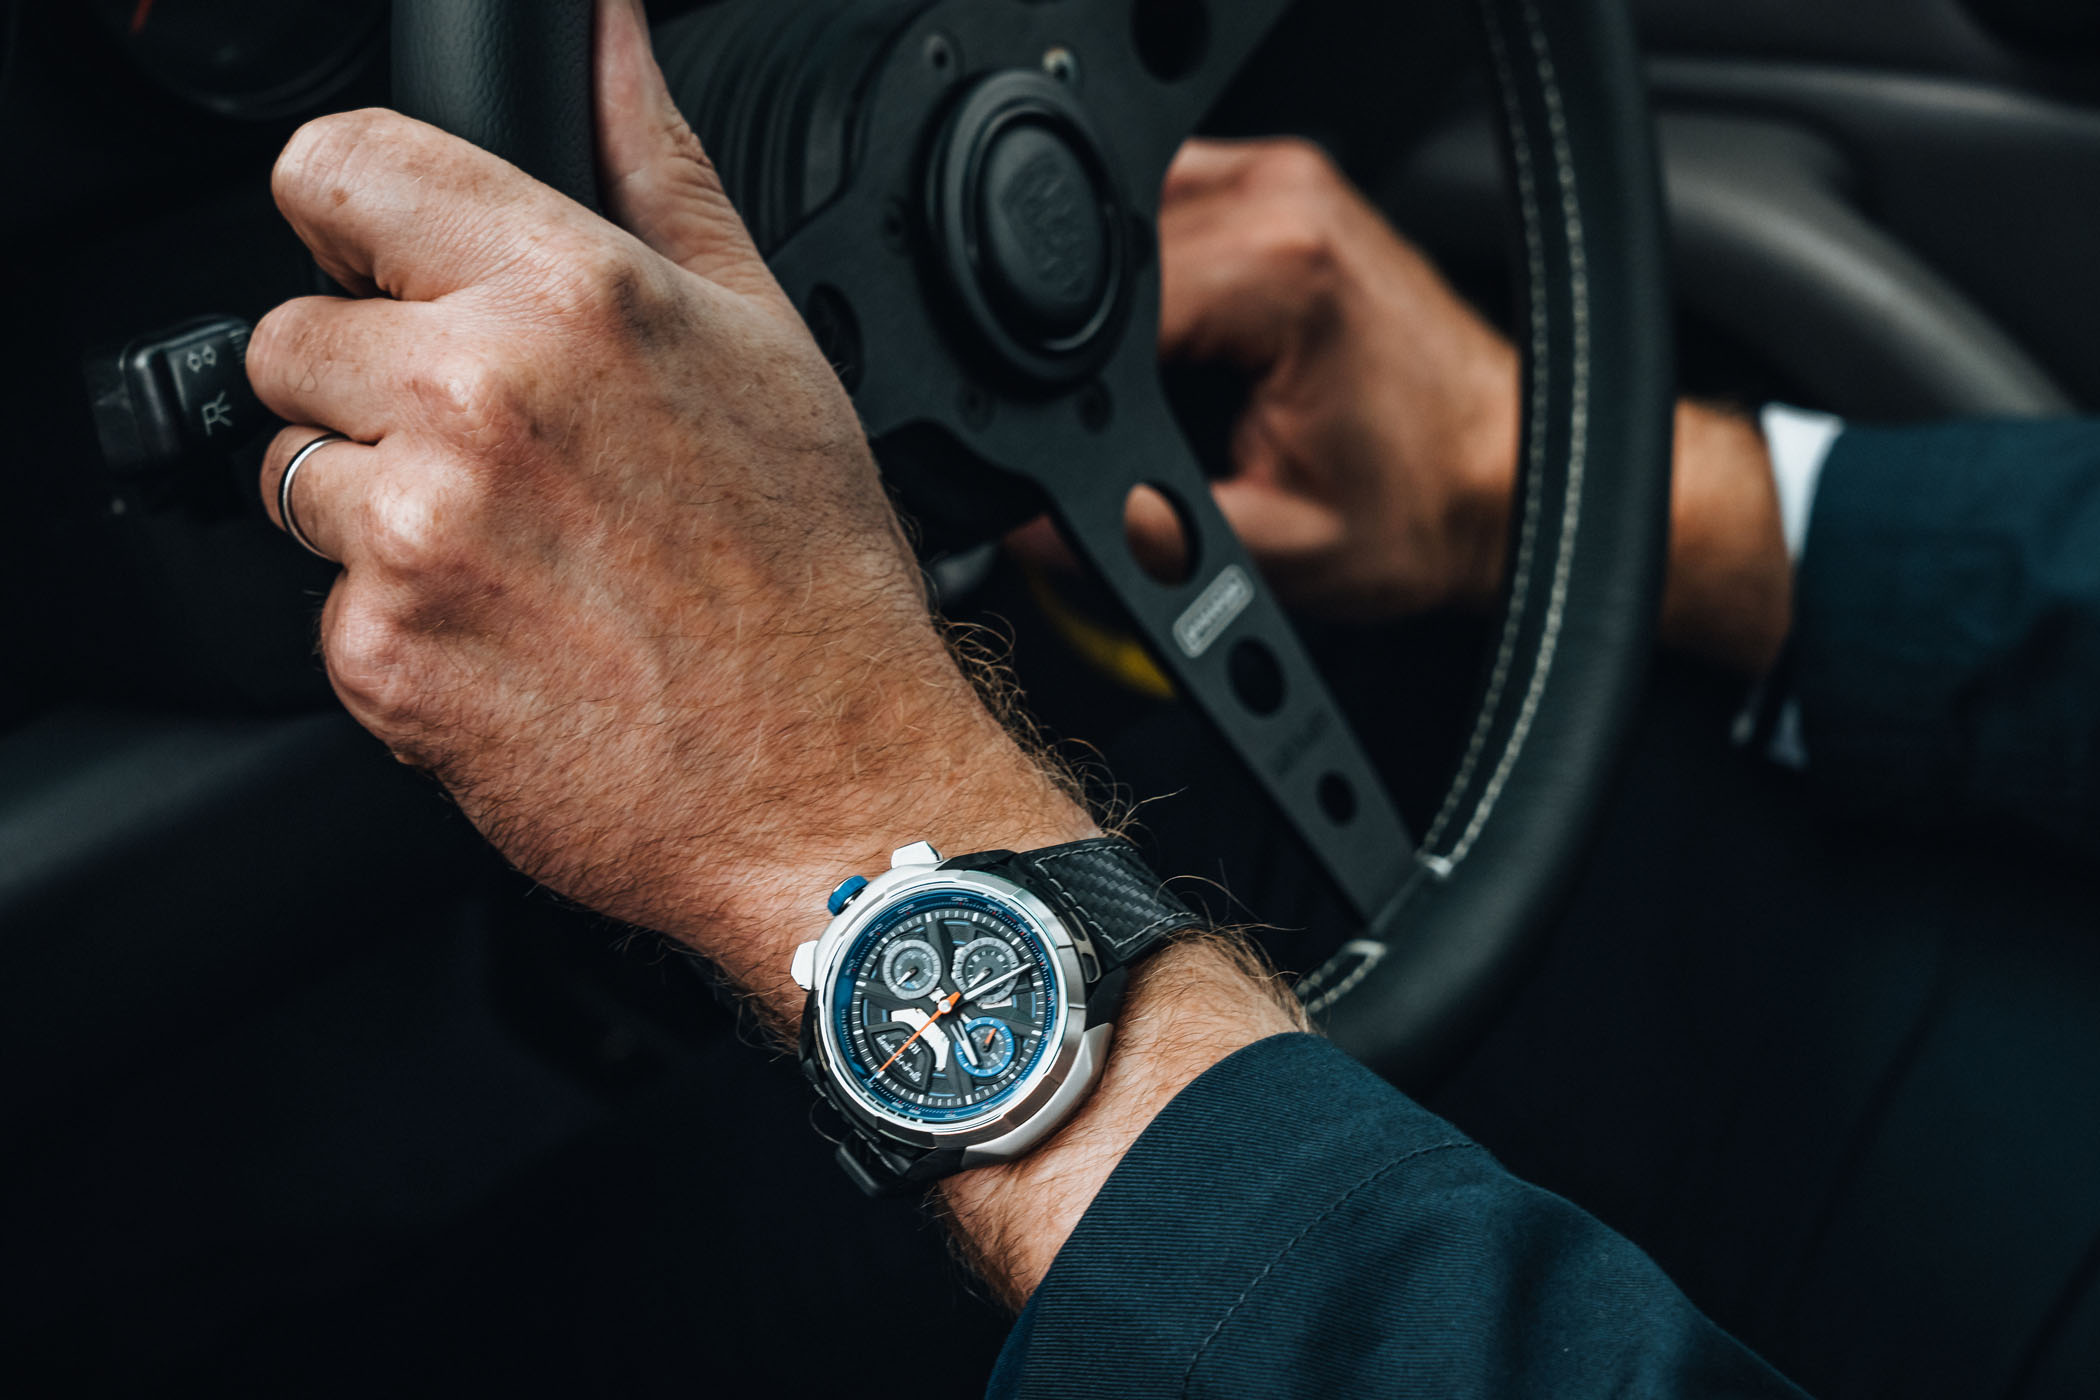 REC Watches 901 GW Carbon Exoskeleton and Chelsea Grey